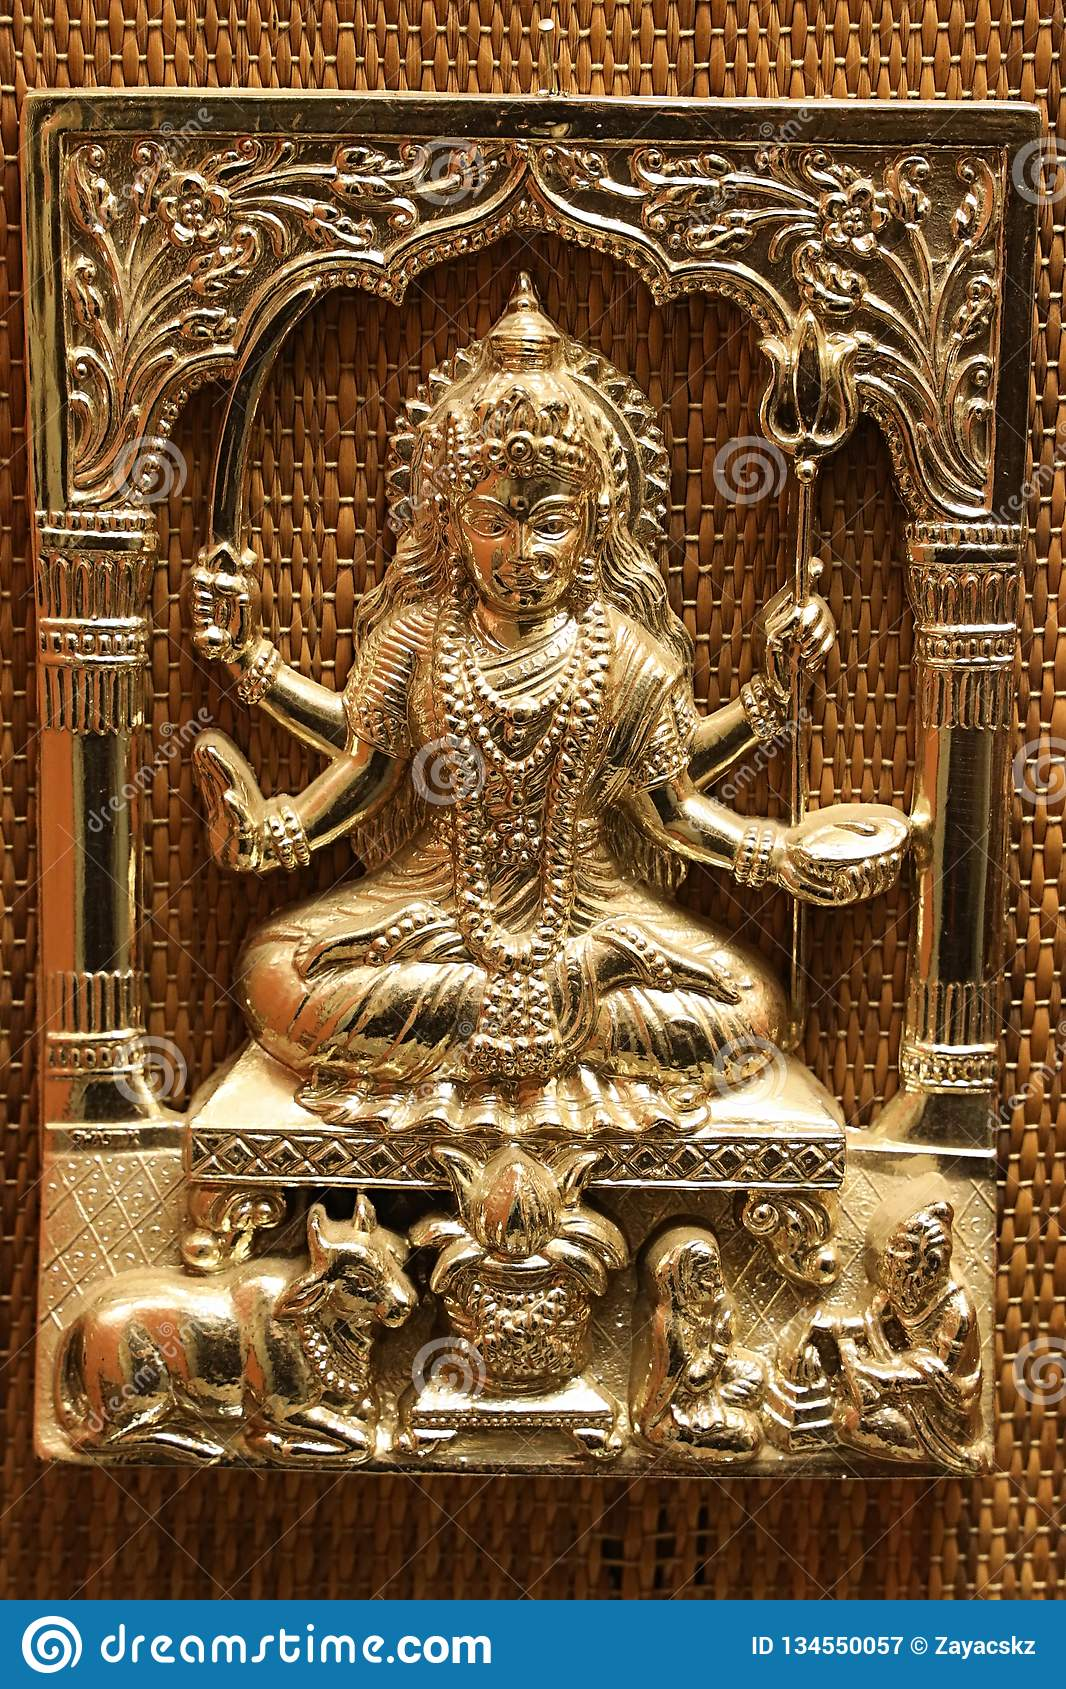 Gold plated steel embossed anaglyph picture of hinduistic god Shiva with trident called trishula and sword